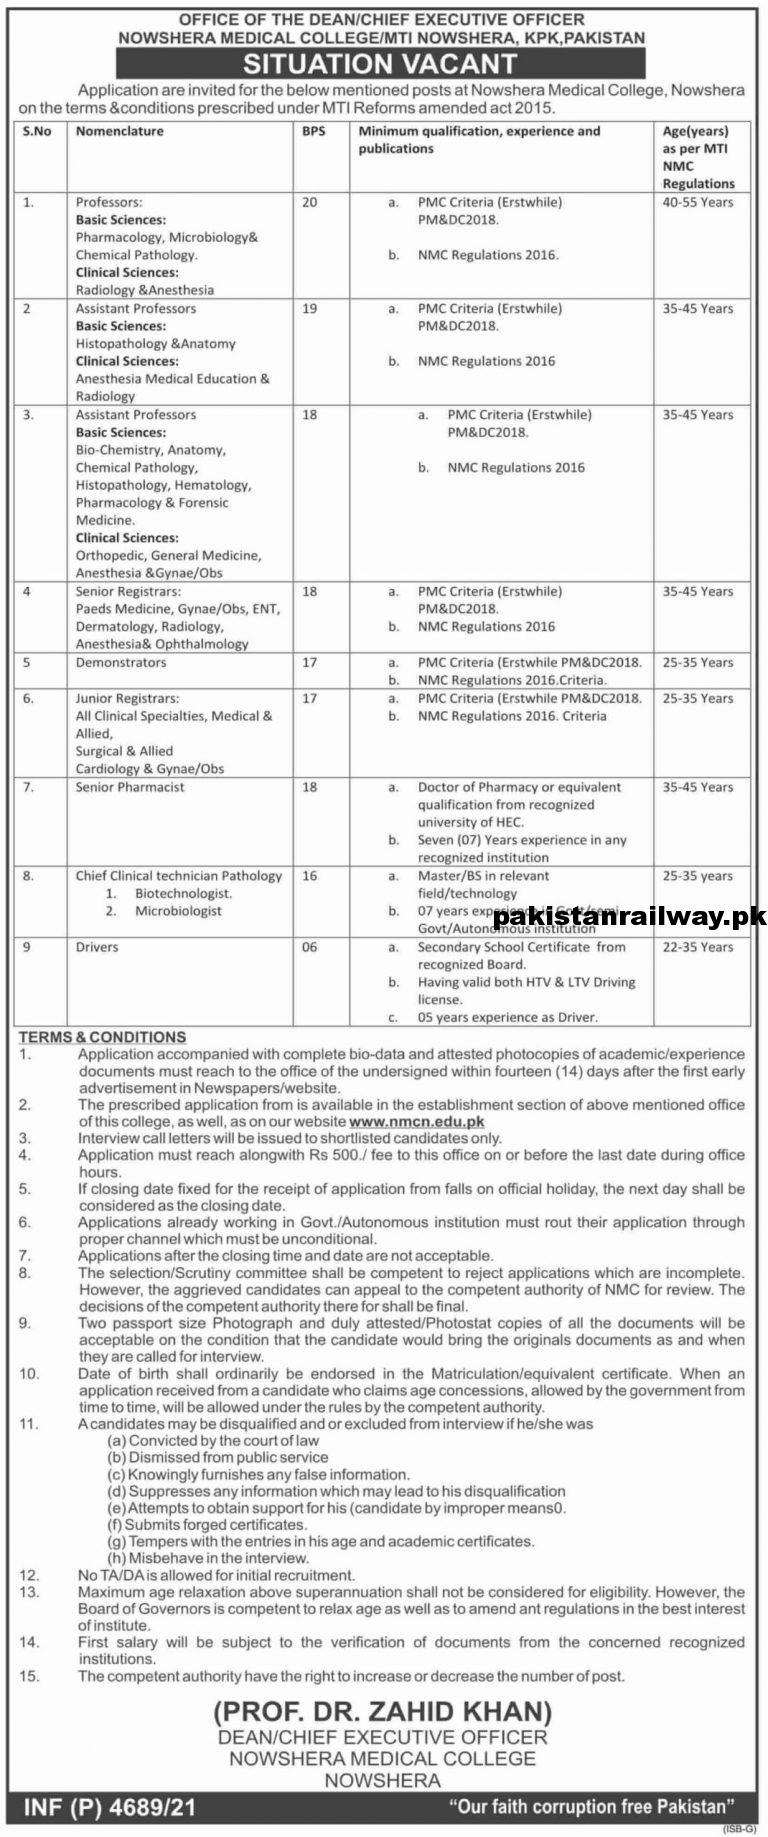 Latest Jobs At Nowshera Medical College 2021 Application Form